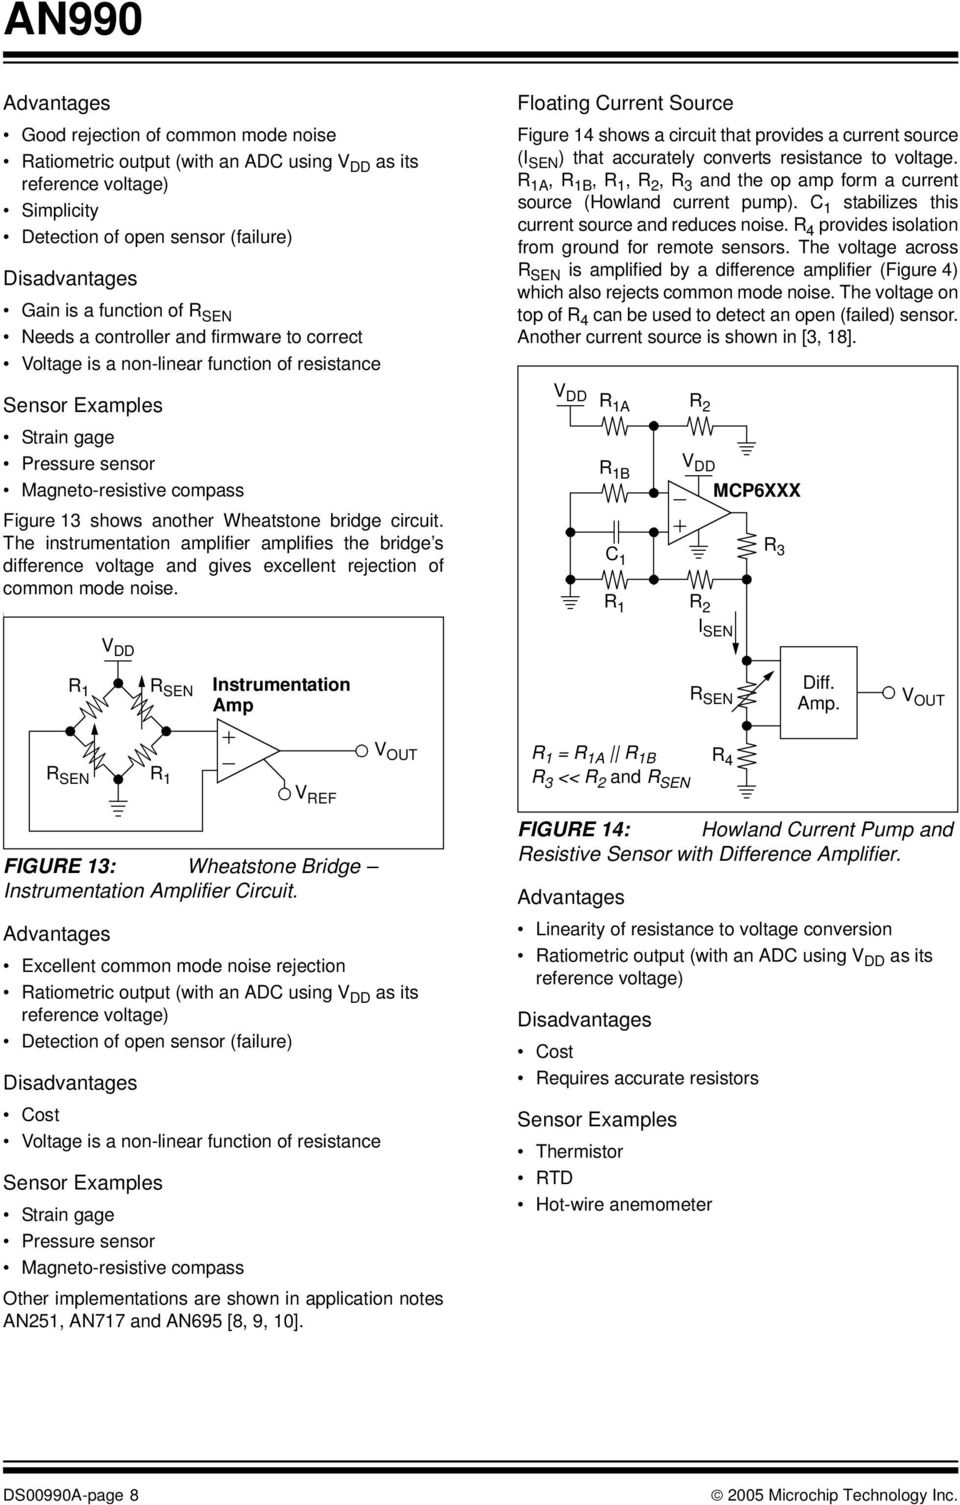 An990 Analog Sensor Conditioning Circuits An Overview Introduction In The Opamp Circuit Of Howland Current Source Noninverting A B R 3 And Op Amp Form